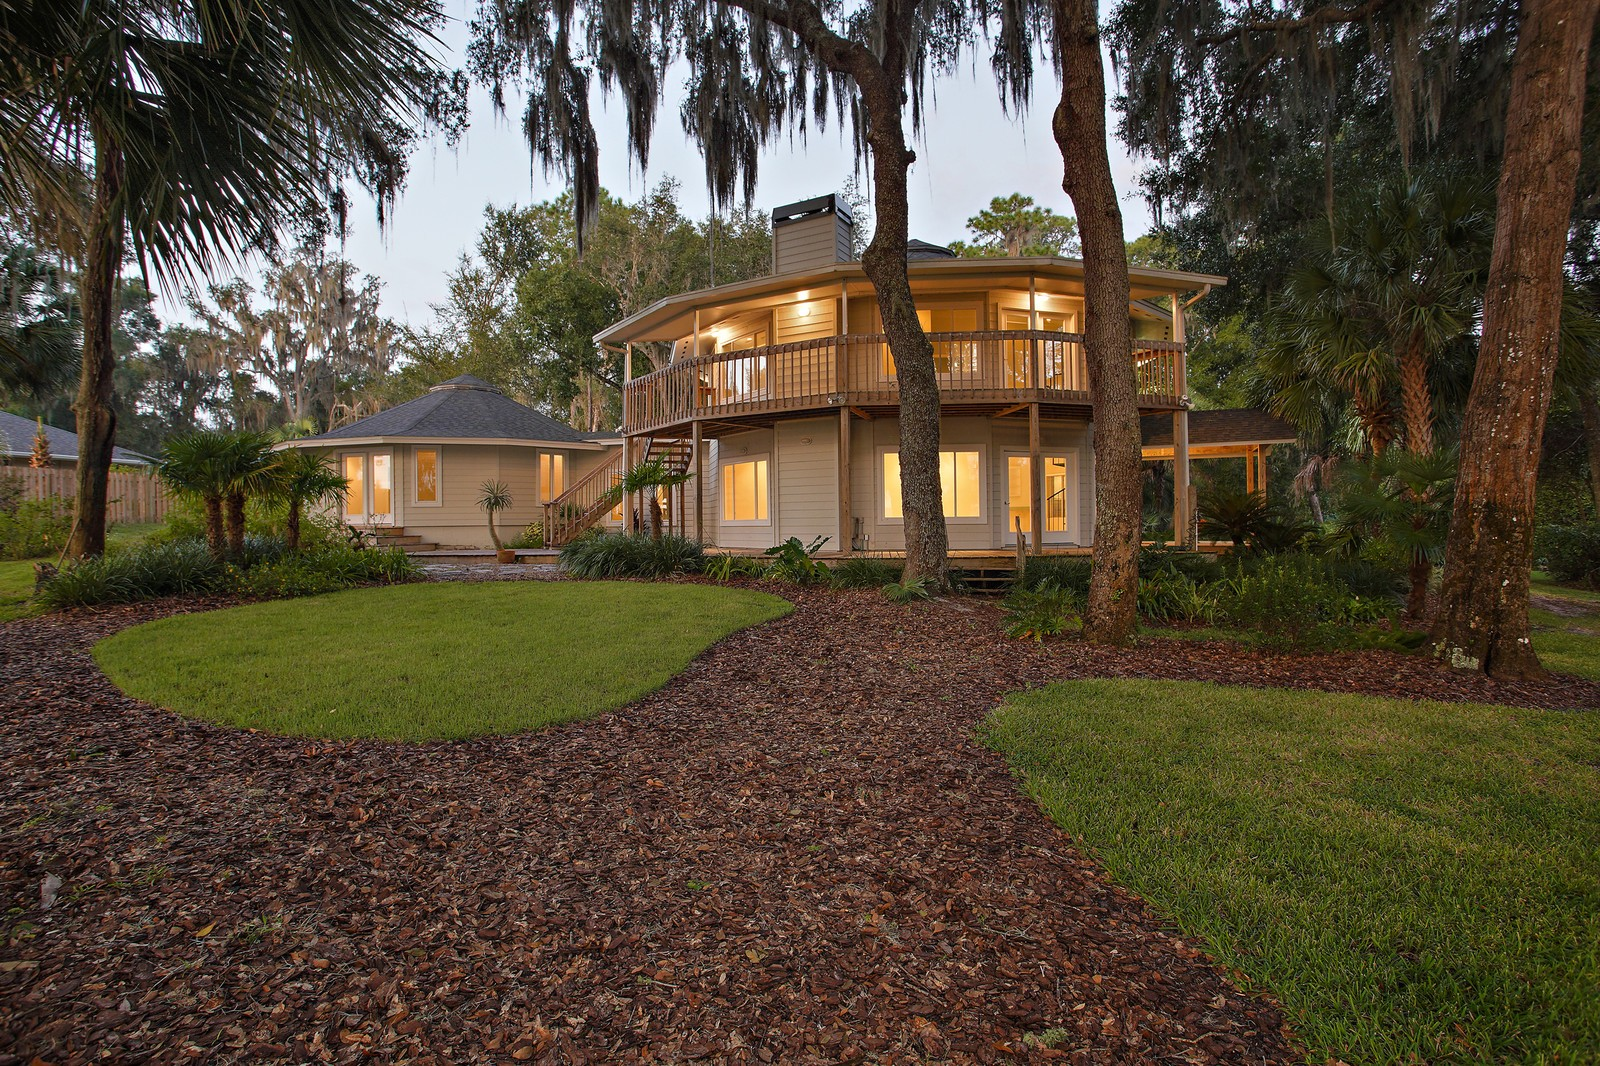 Home for sale in Altoona, Florida